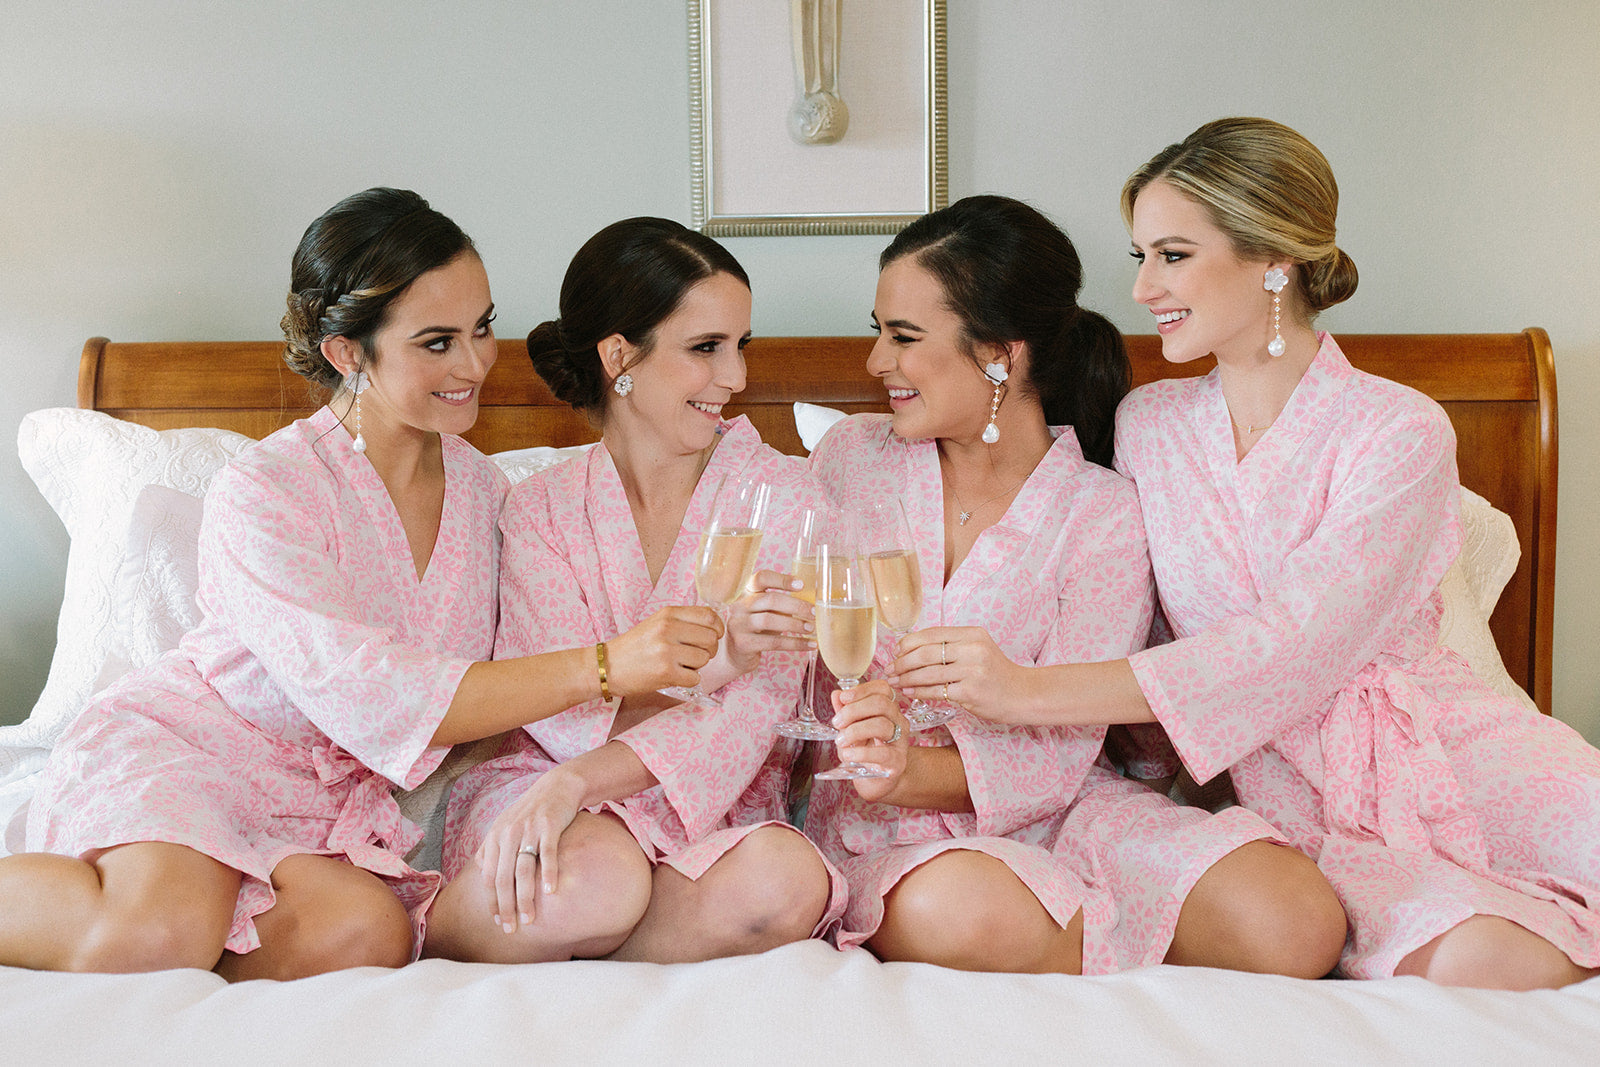 Bridesmaids and brides sitting on bed looking at each other